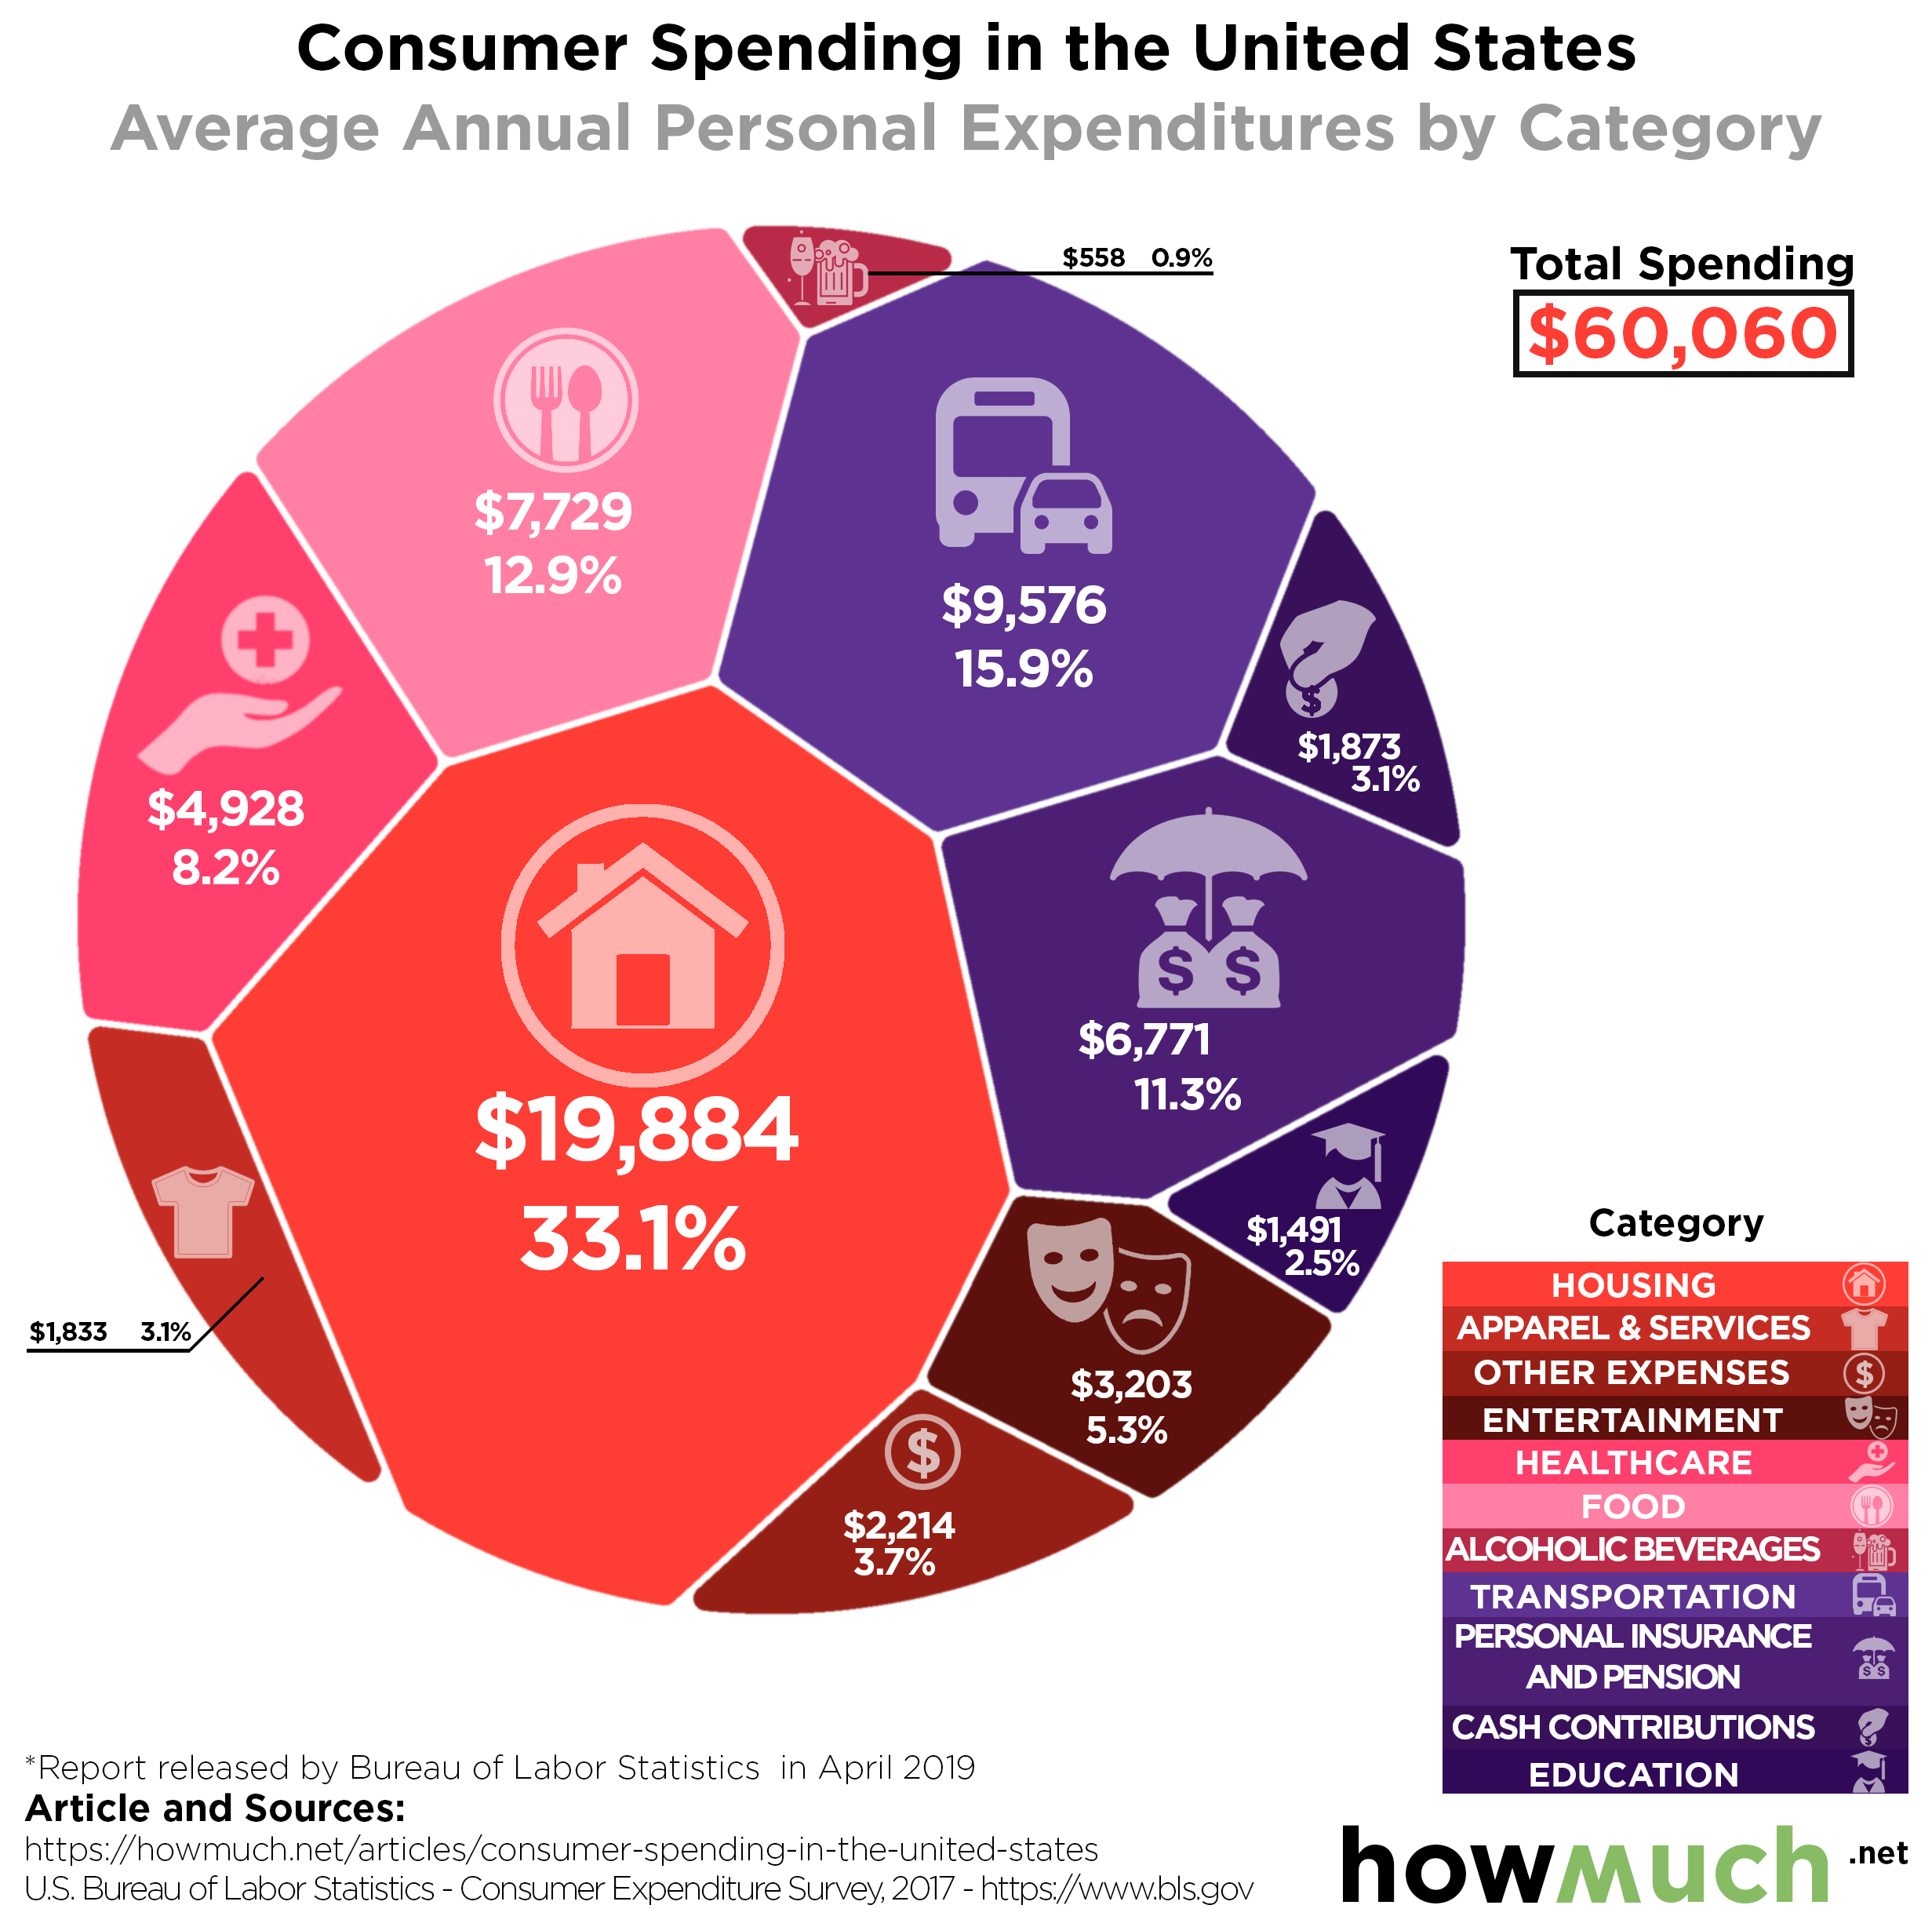 Americans Spend Their Money